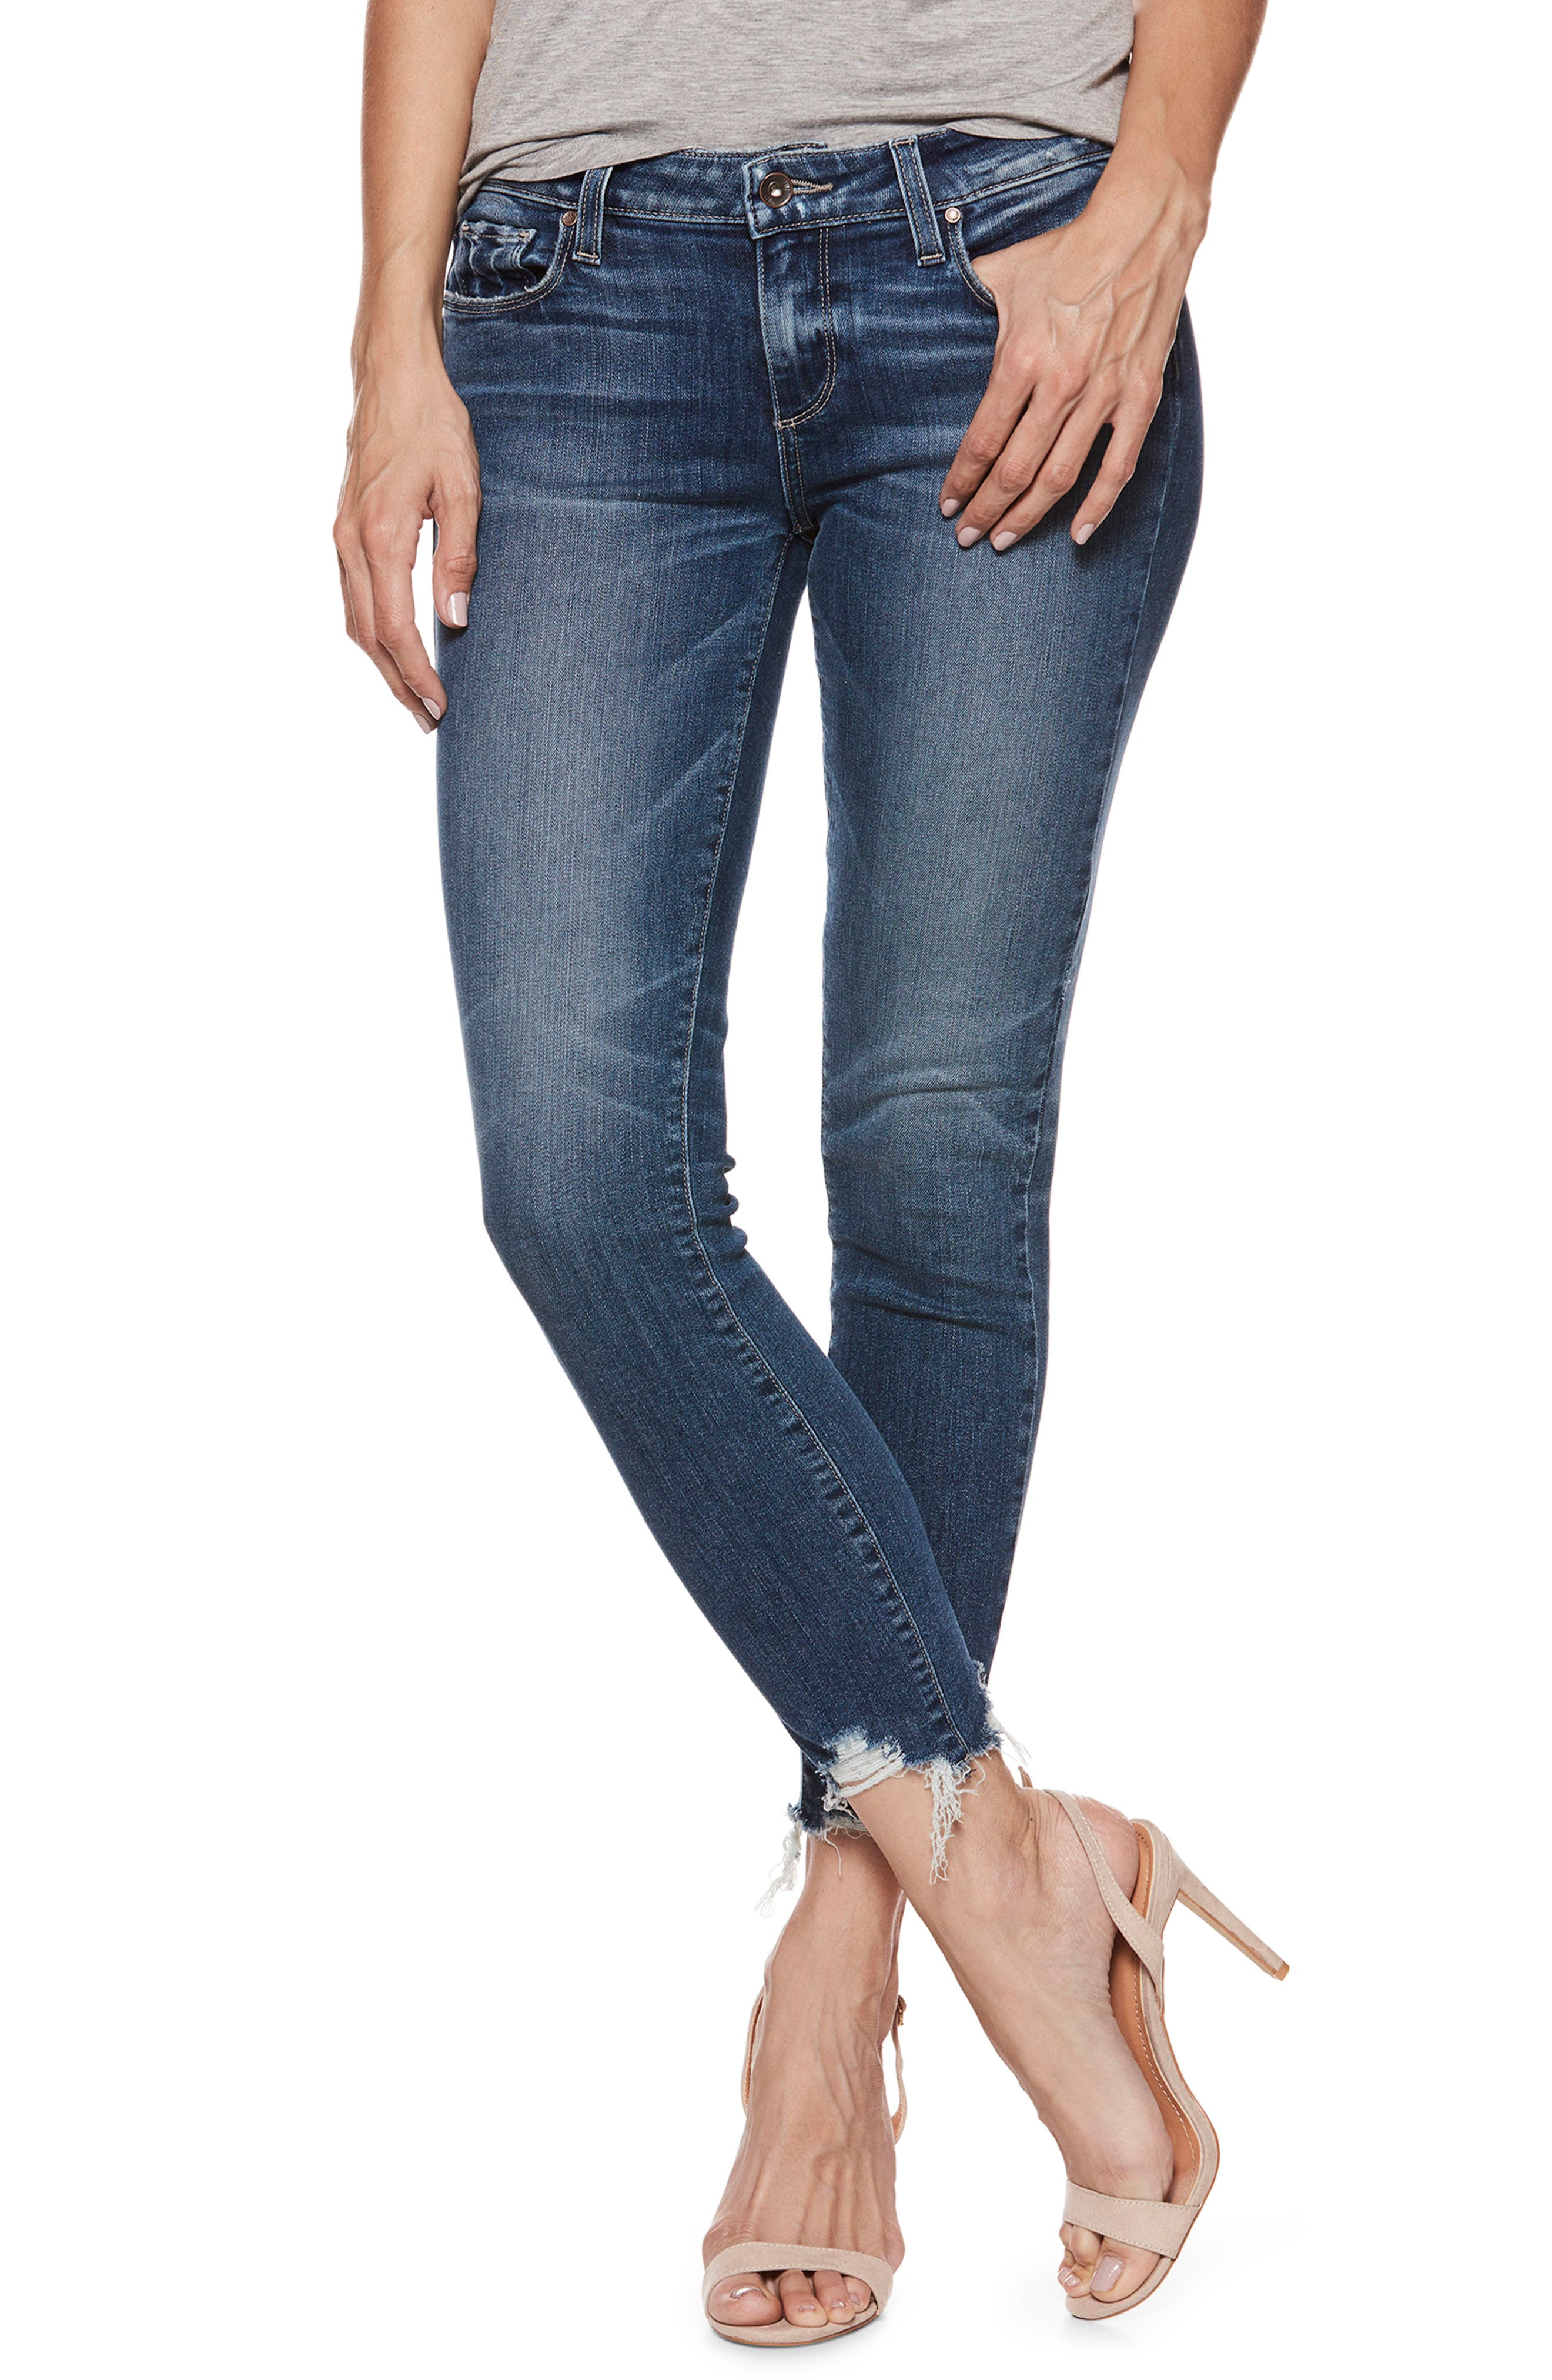 Transcend Vintage - Verdugo Ankle Skinny Jeans,                         Main,                         color, Malibu Super Distressed